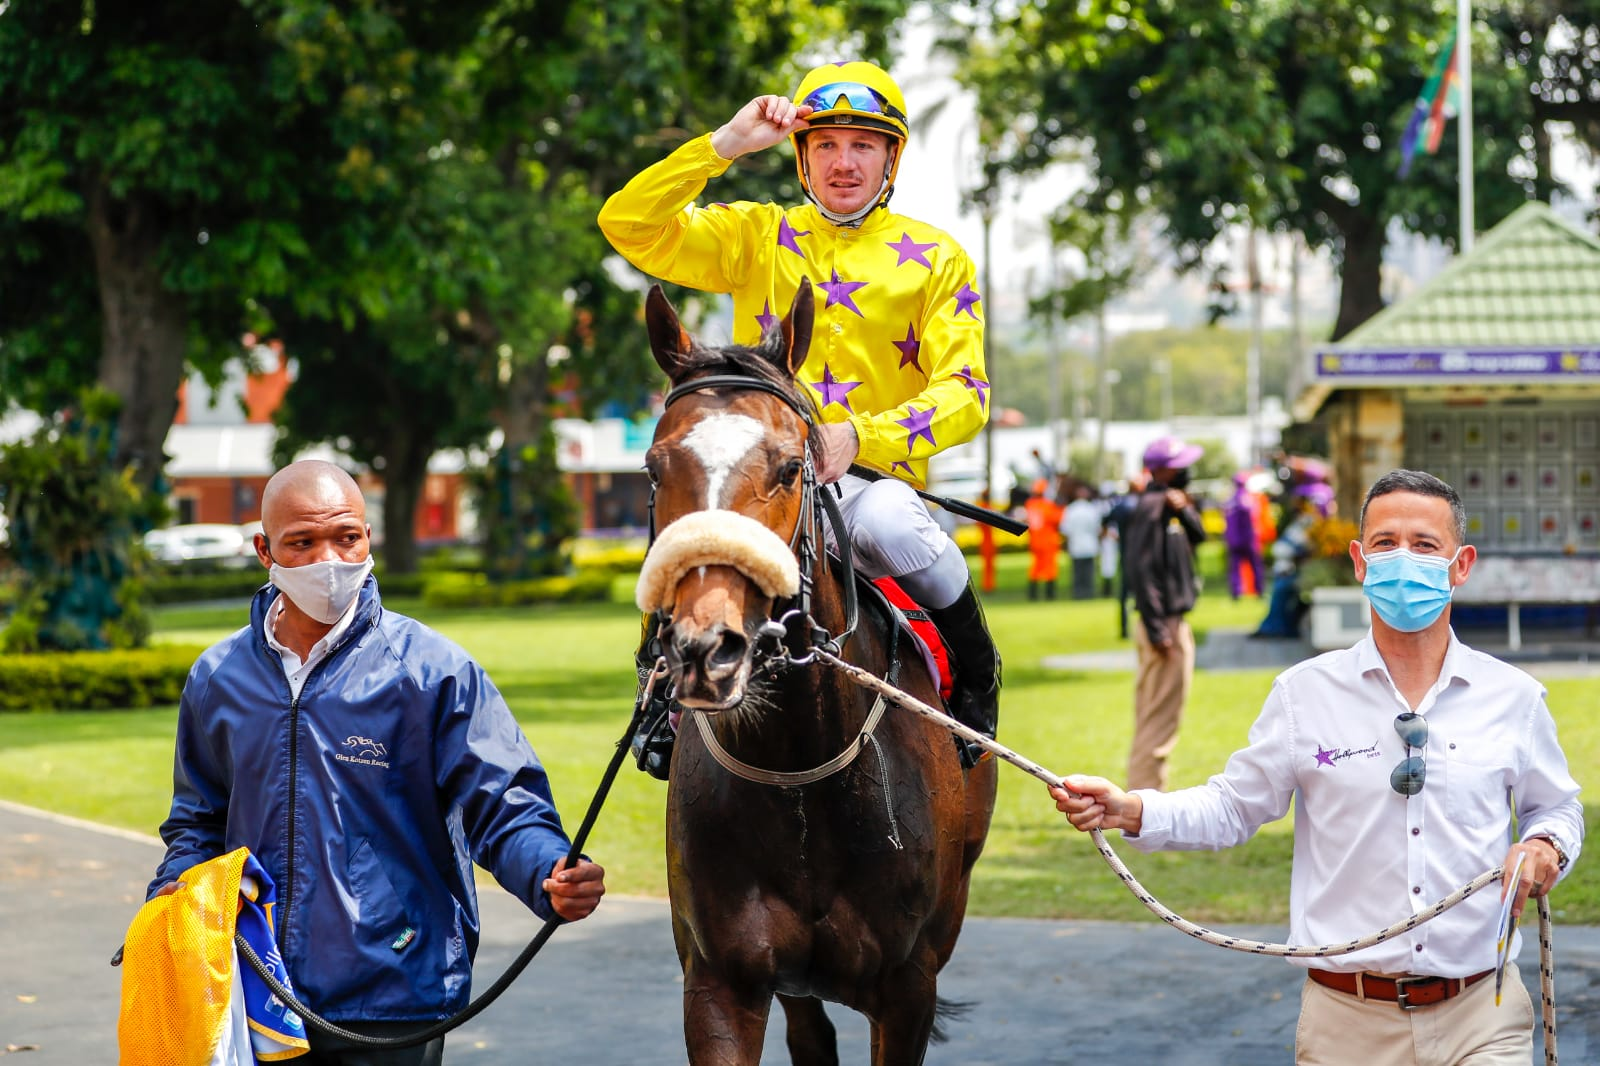 Horse IMBEJEJE being led in after winning at Hollywoodbets Greyville. Jockey saluting.